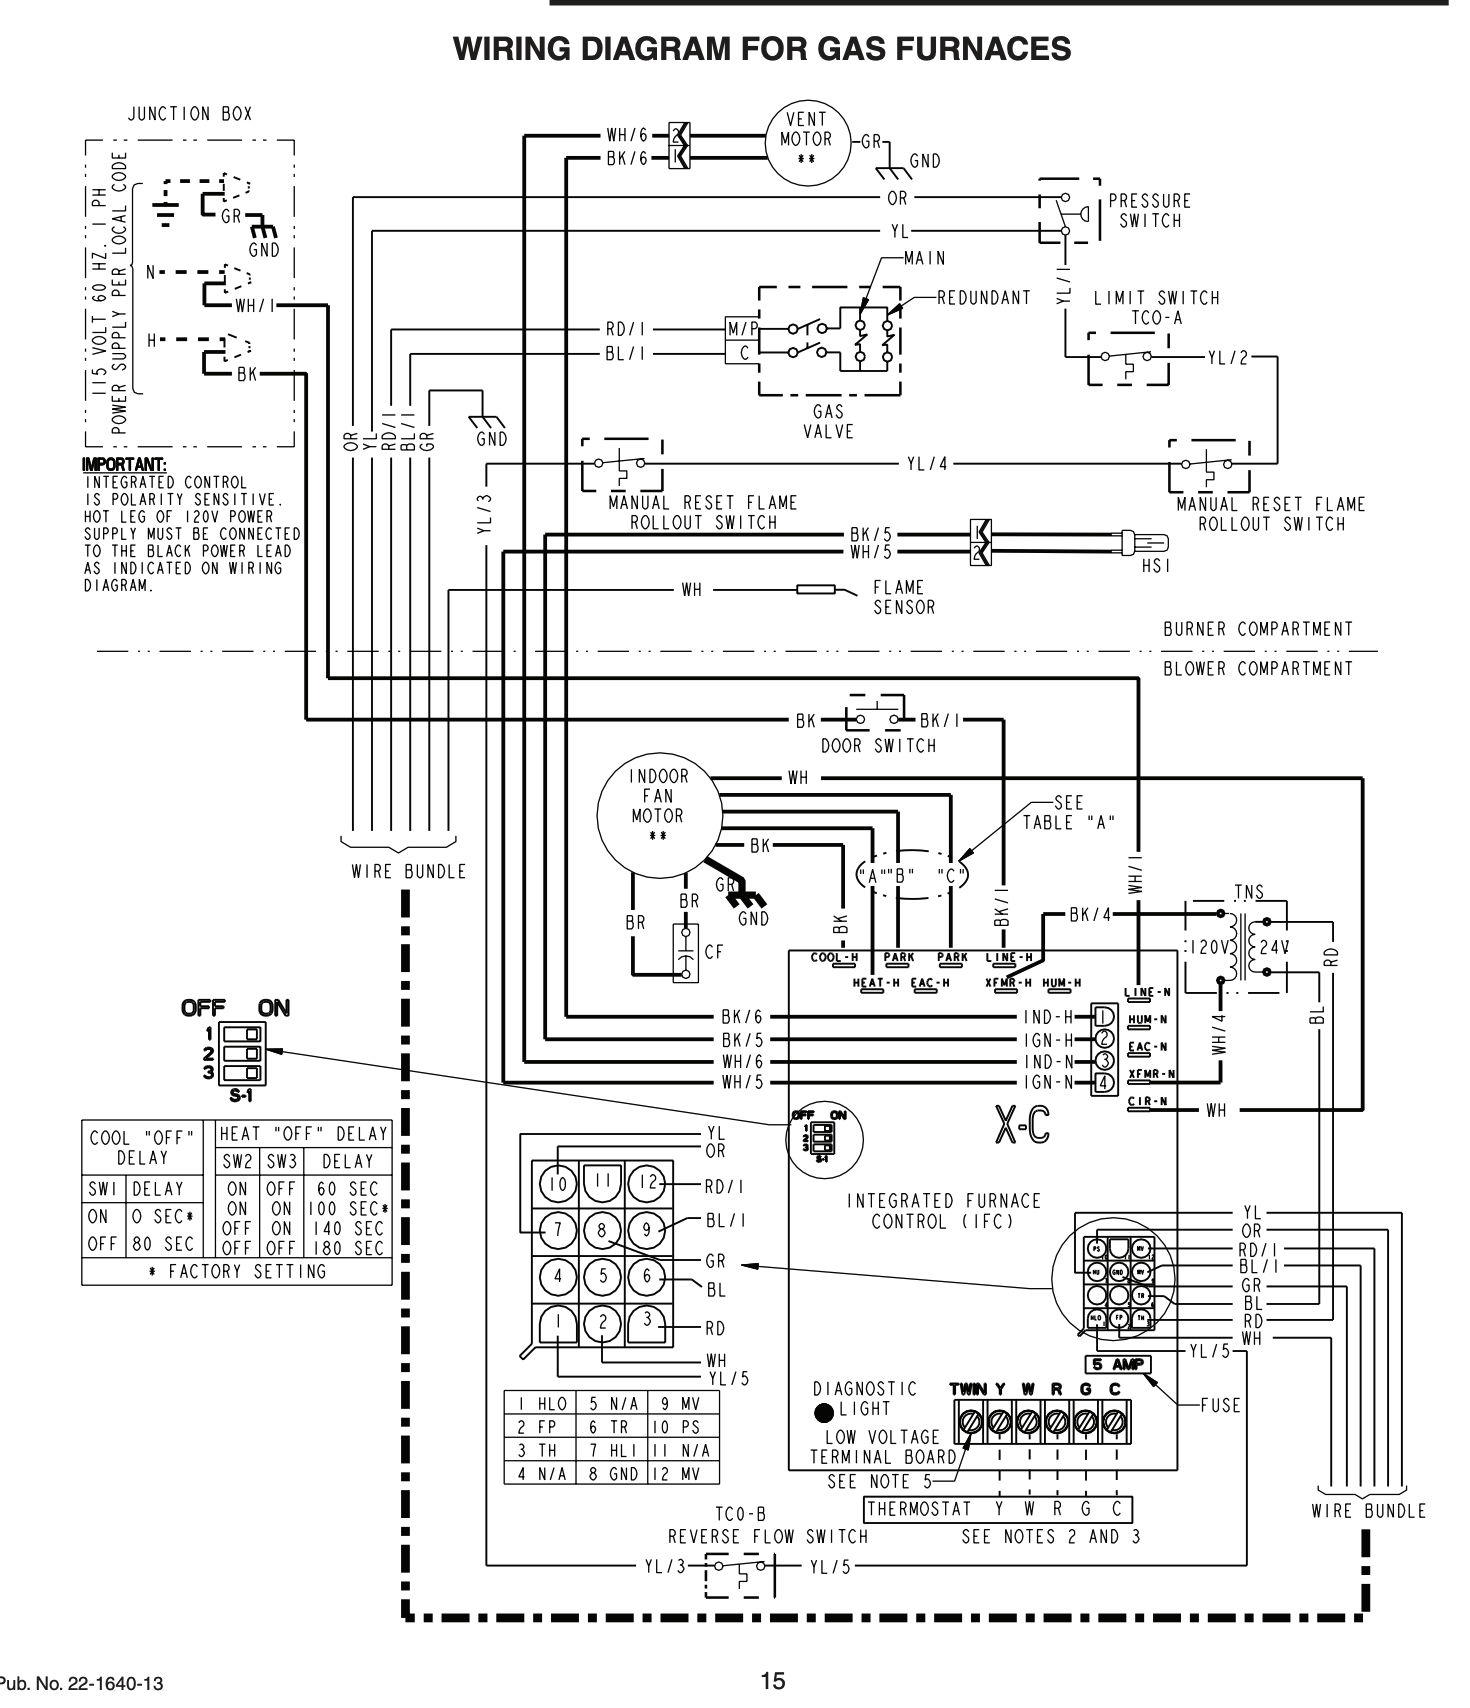 basic furnace wiring wiring diagram database. Black Bedroom Furniture Sets. Home Design Ideas